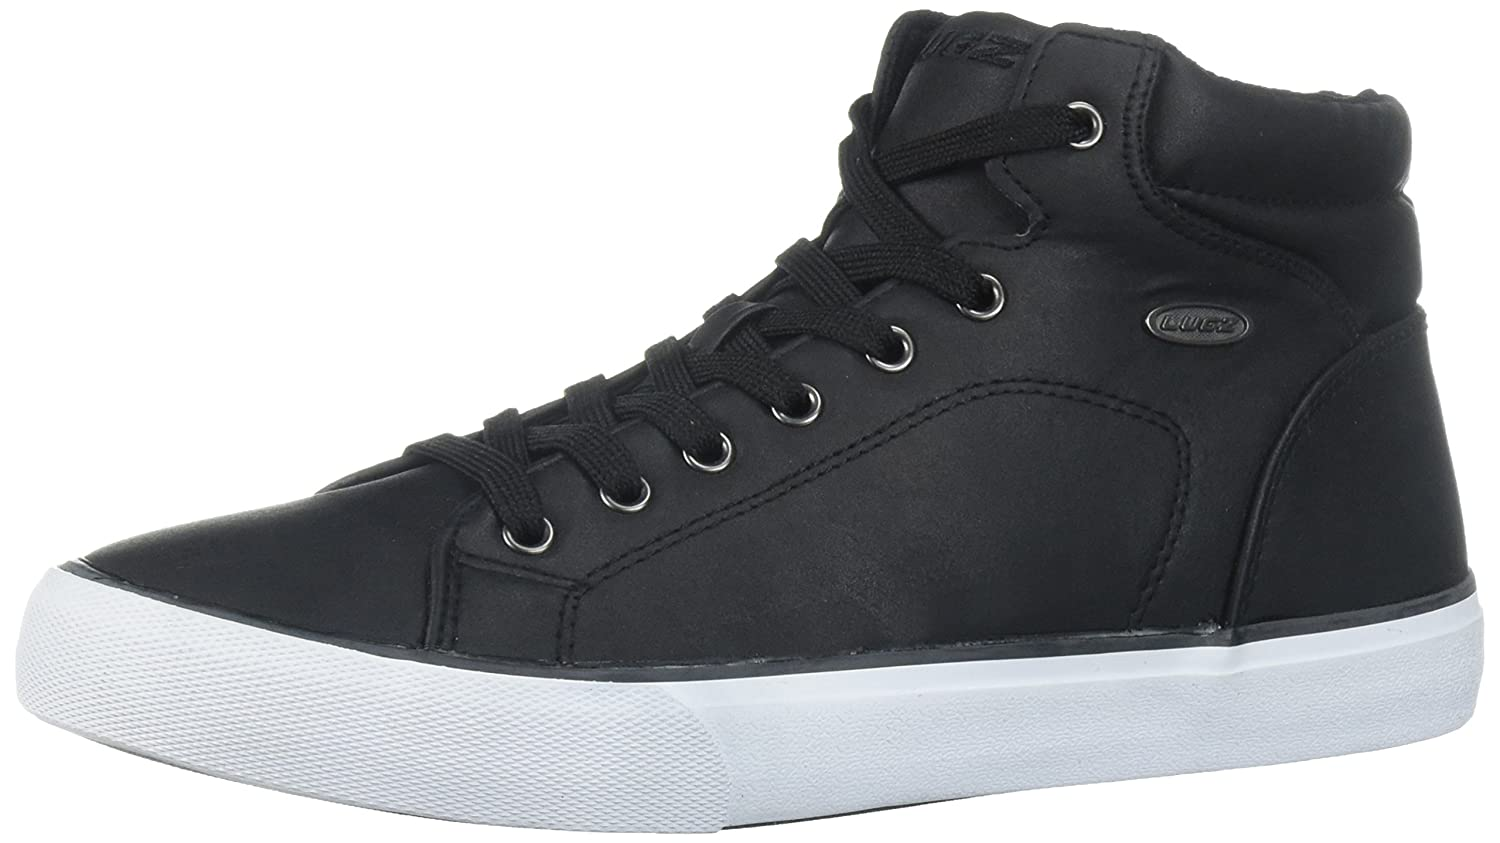 Lugz Men's King Lx Sneaker by Lugz